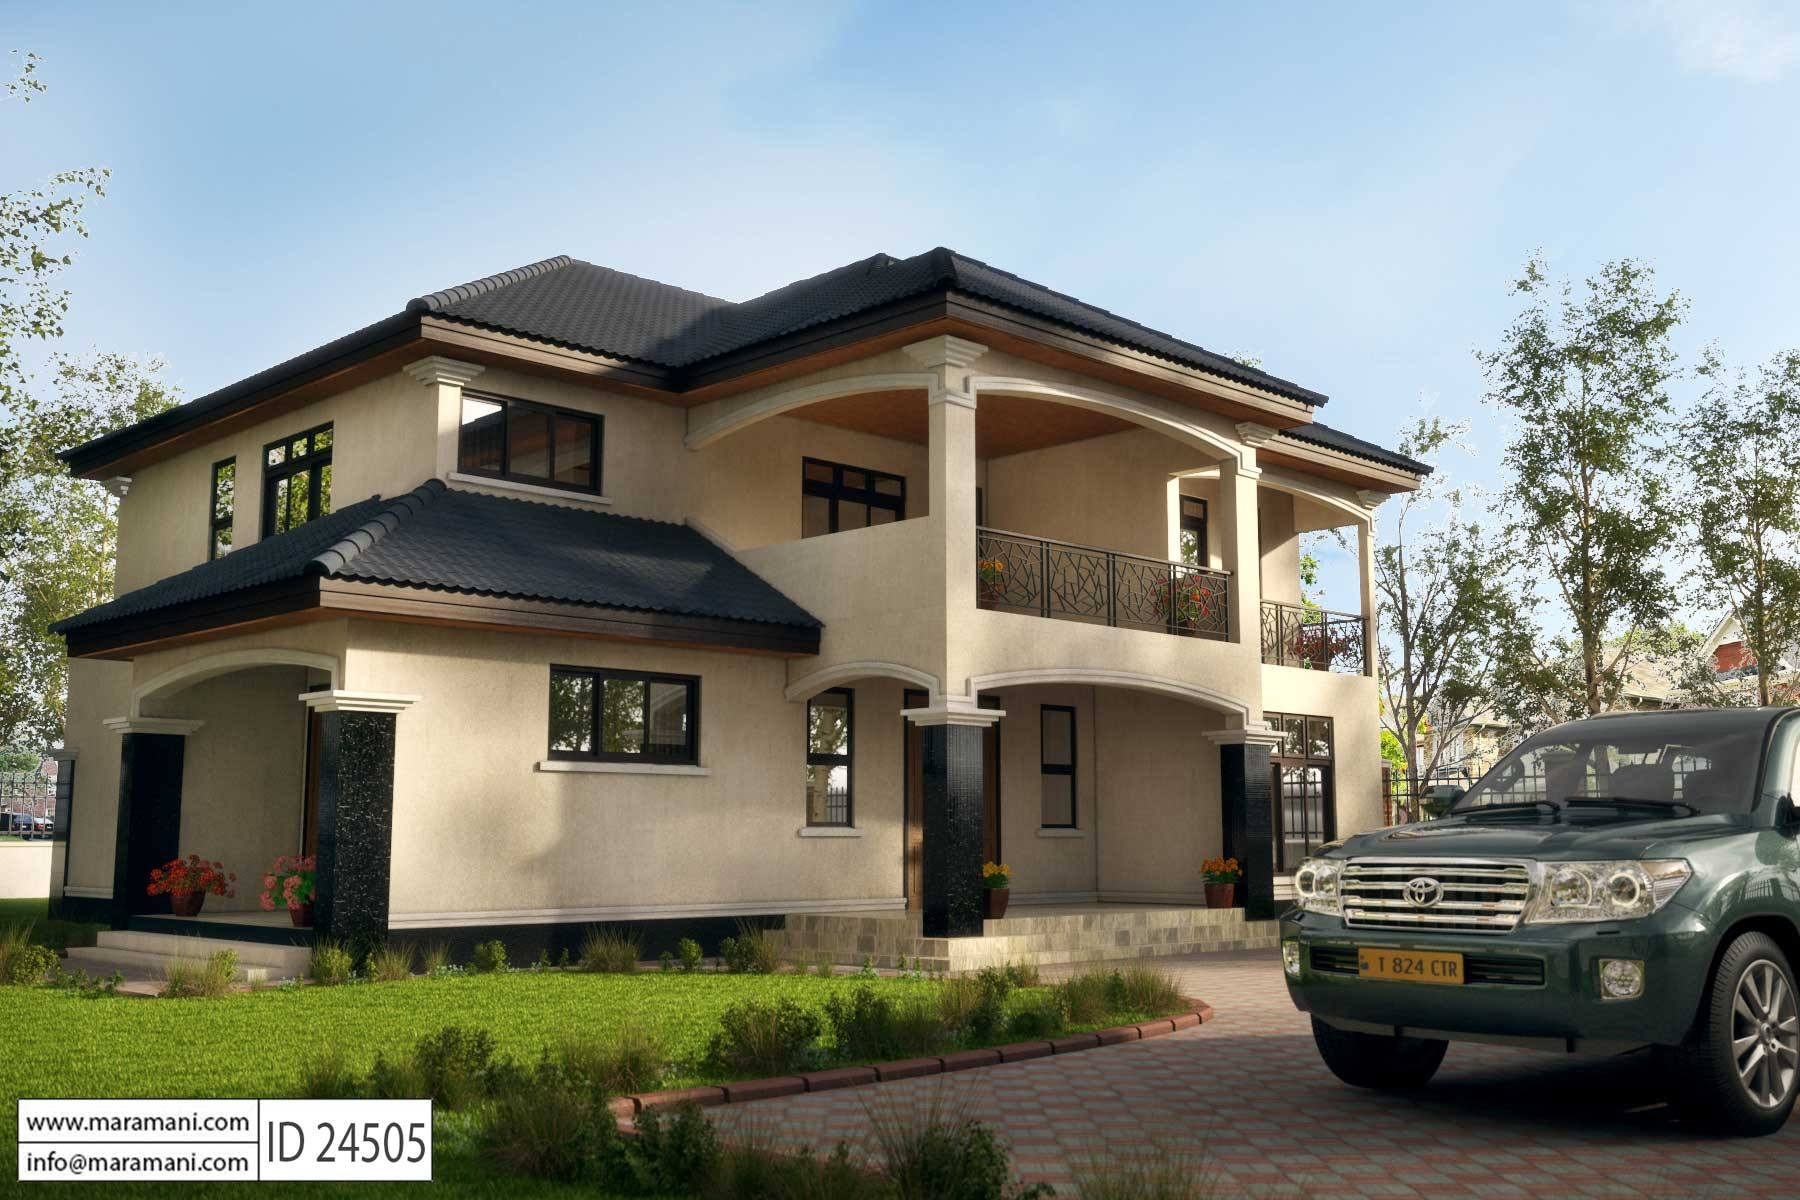 Contemporary house style - ID 24505 - House Designs by Maramani